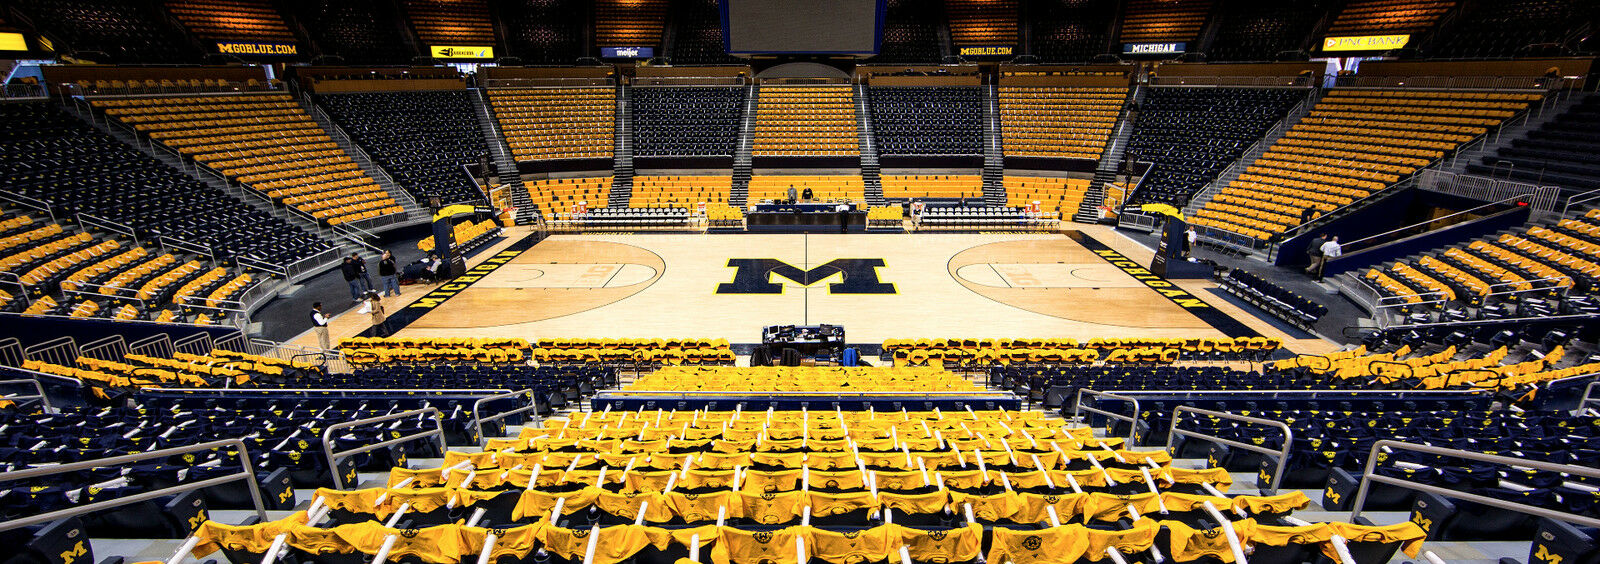 Minnesota Golden Gophers at Michigan Wolverines Basketball